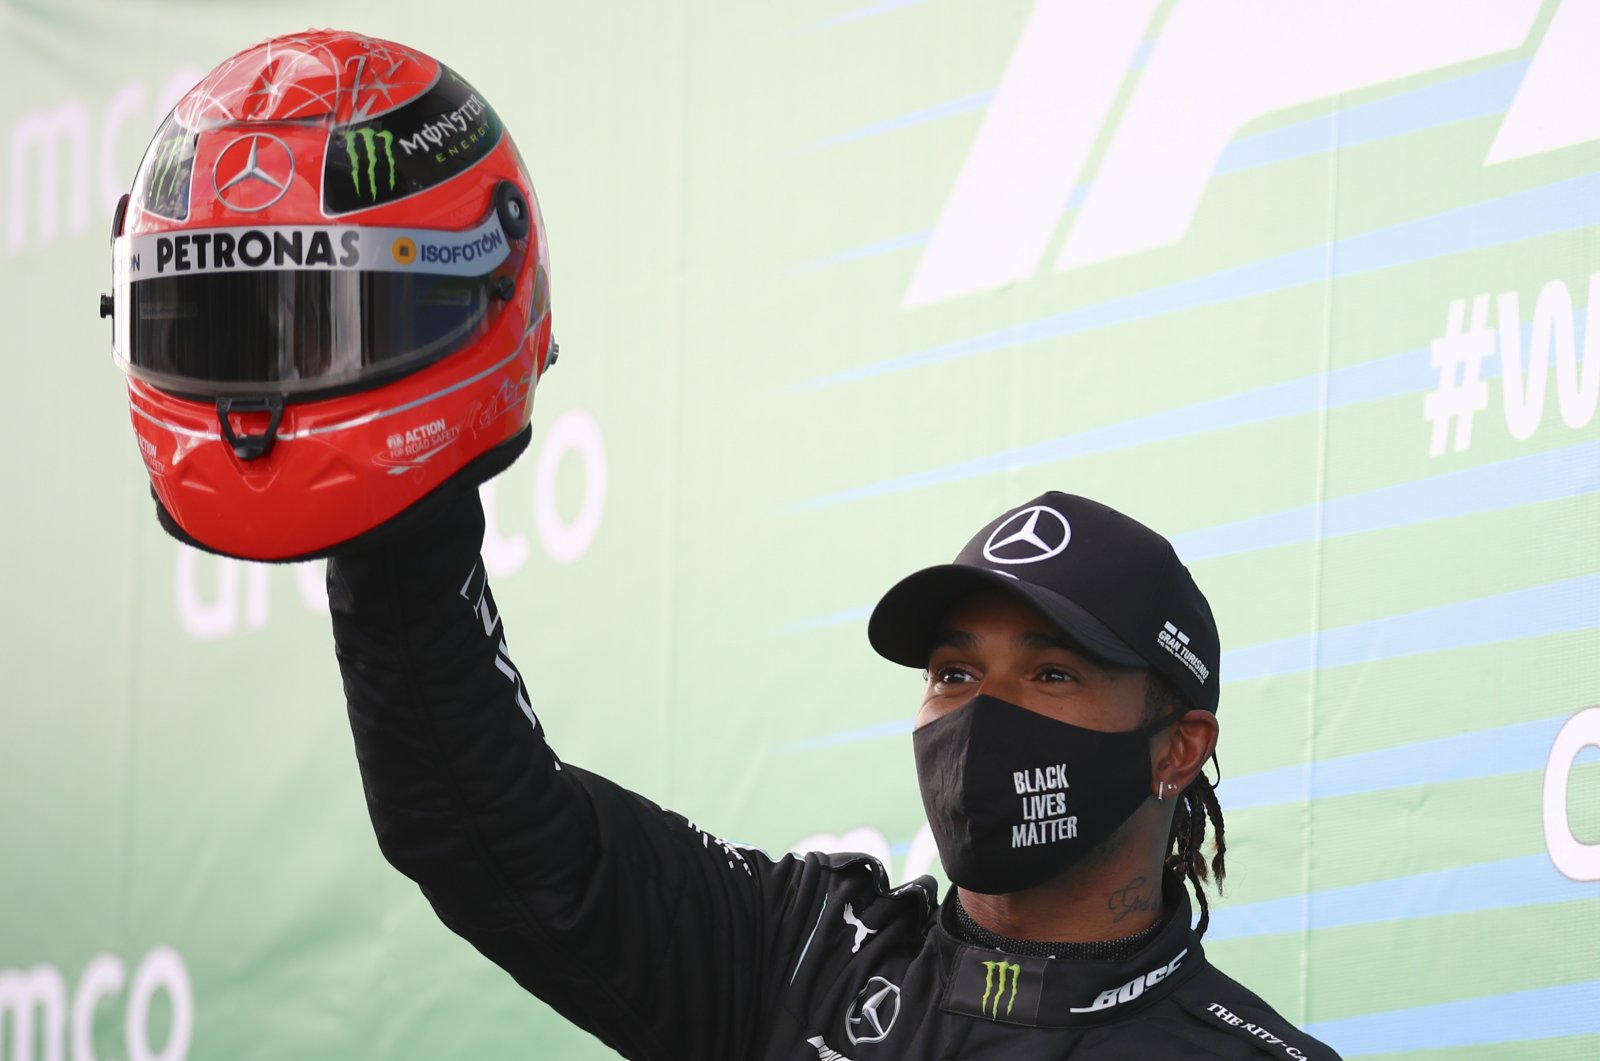 Lewis Hamilton shows a helmet of legendary driver Michael Schumacher, which was gifted to him, after he wins the Eifel Grand Prix in Nuerburg, Germany, Oct. 11, 2020. (AP Photo)